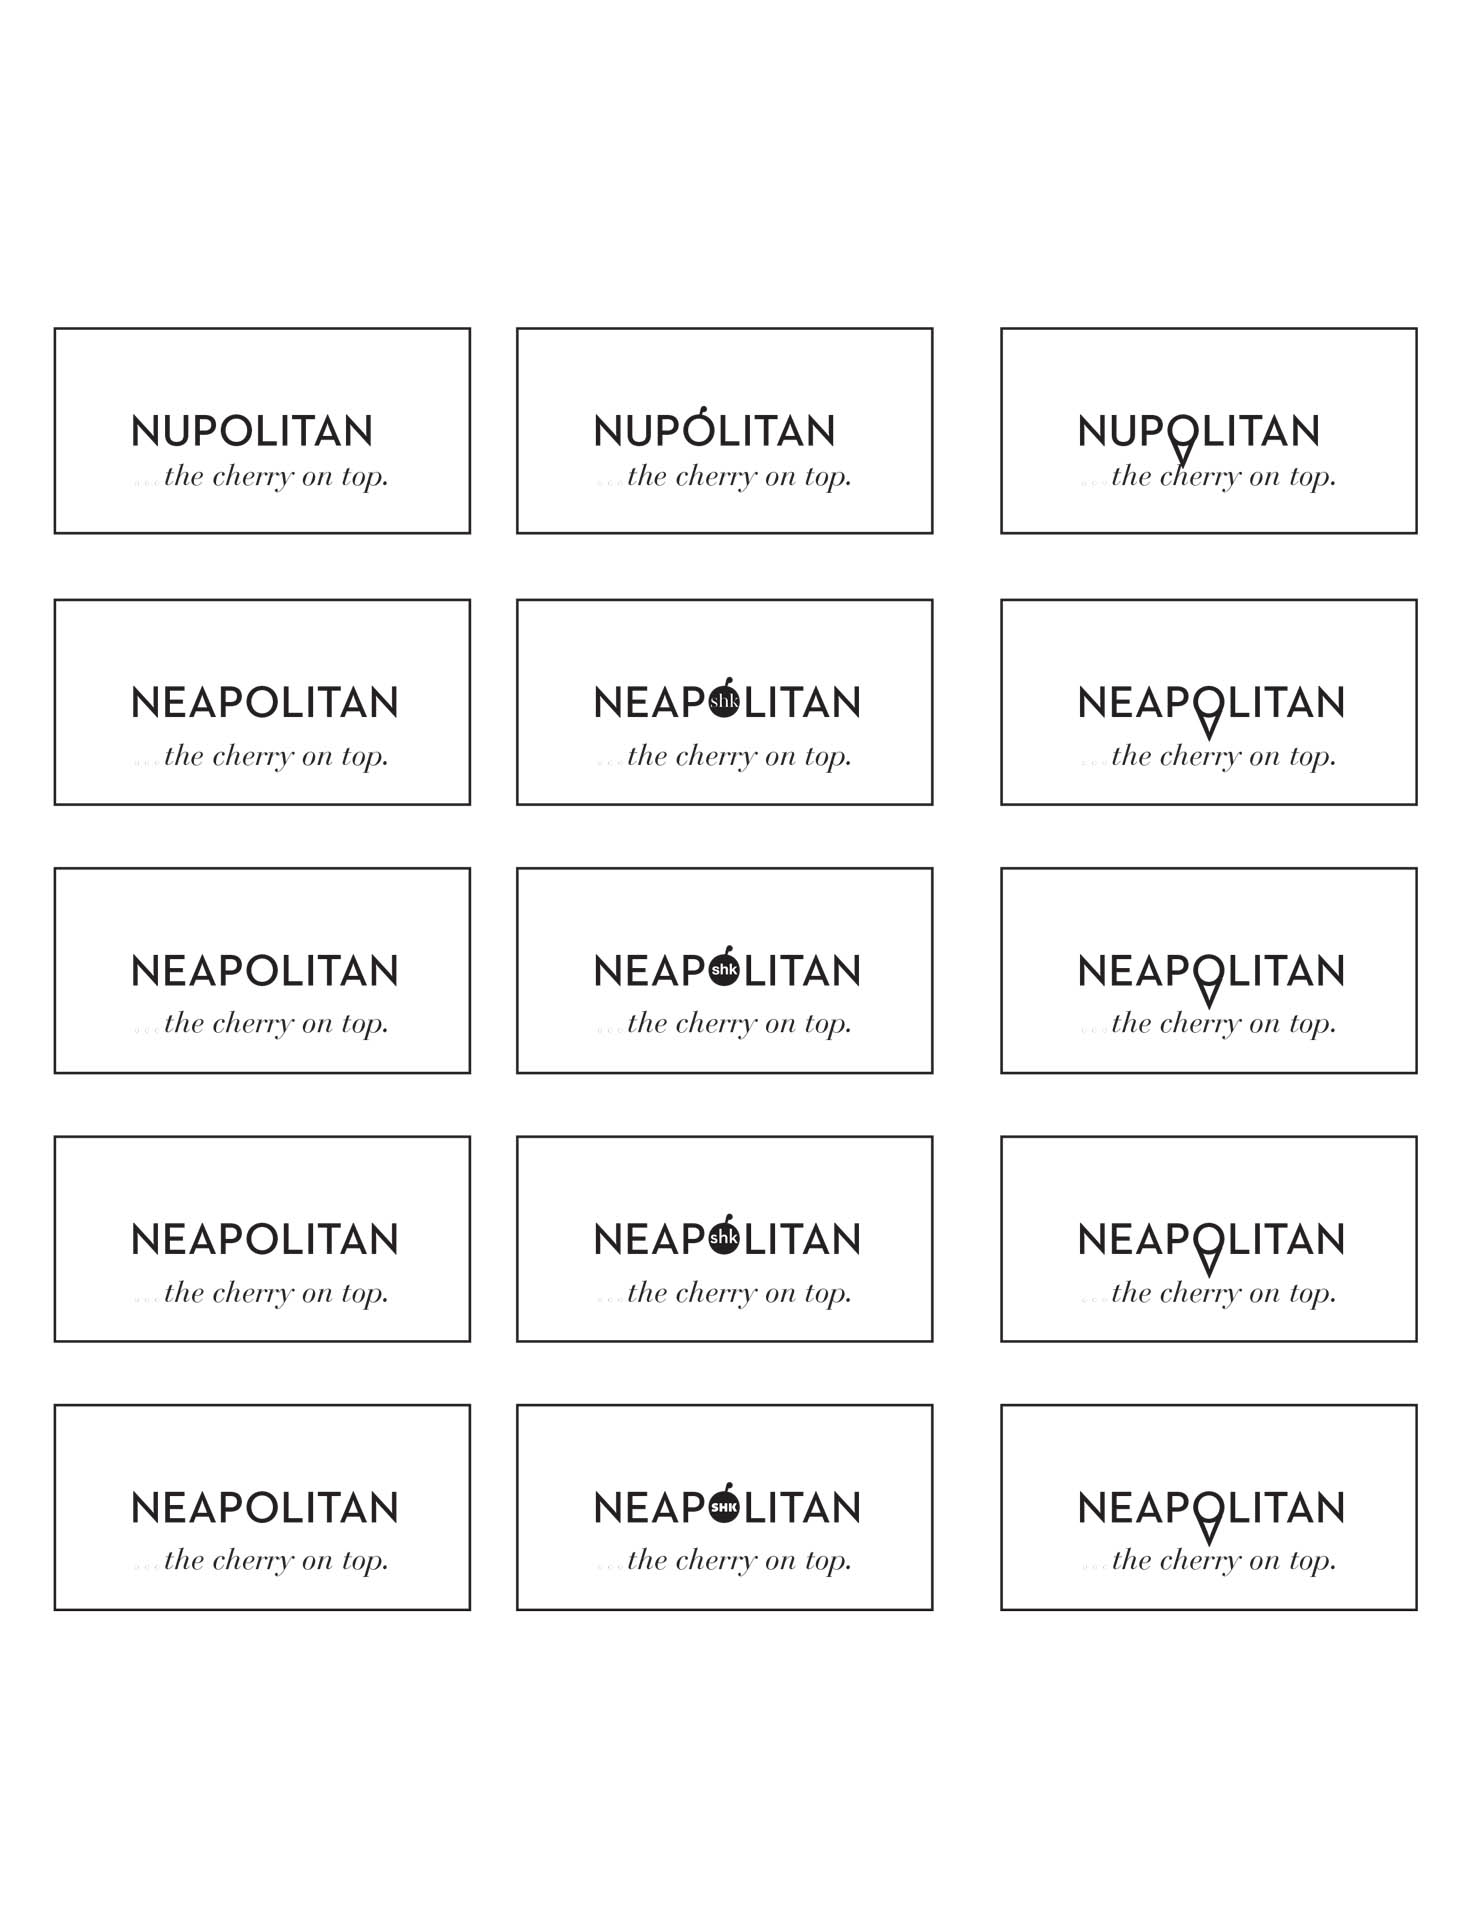 Samples of Nüpolitan logos on white paper